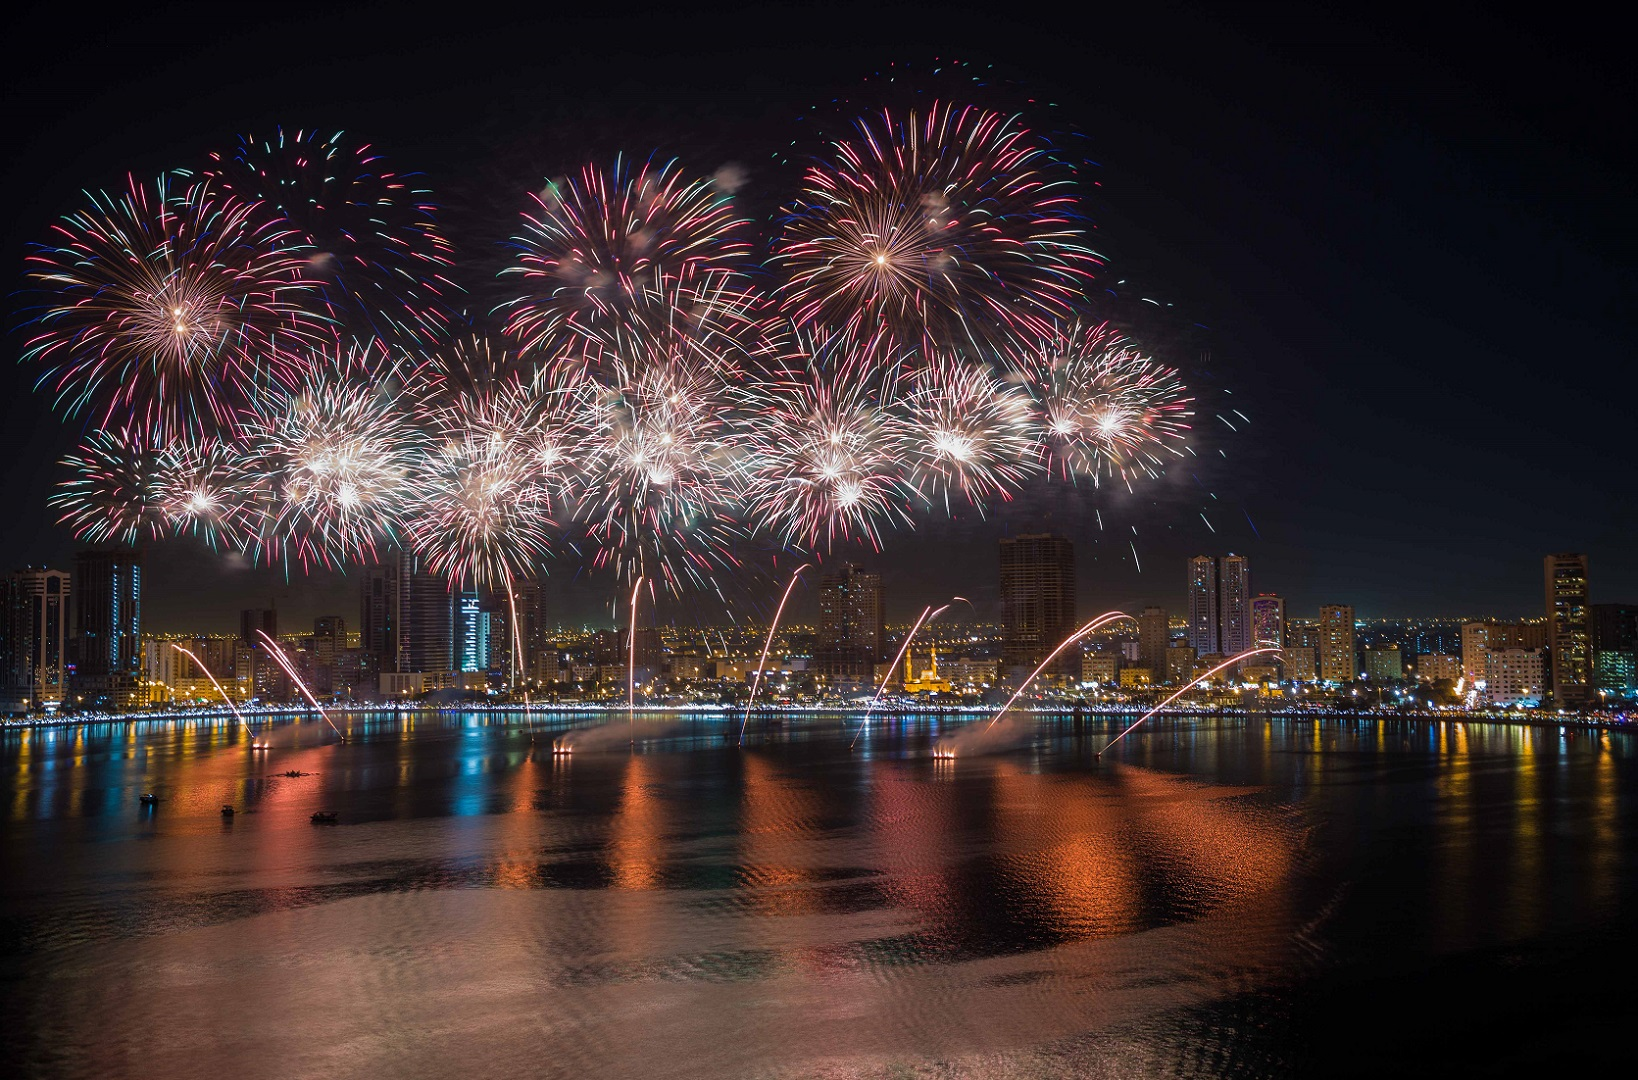 New Year Fireworks Sharjah 2019, United Arab Emirates – The Ultimate New Year's Eve Fireworks Guide